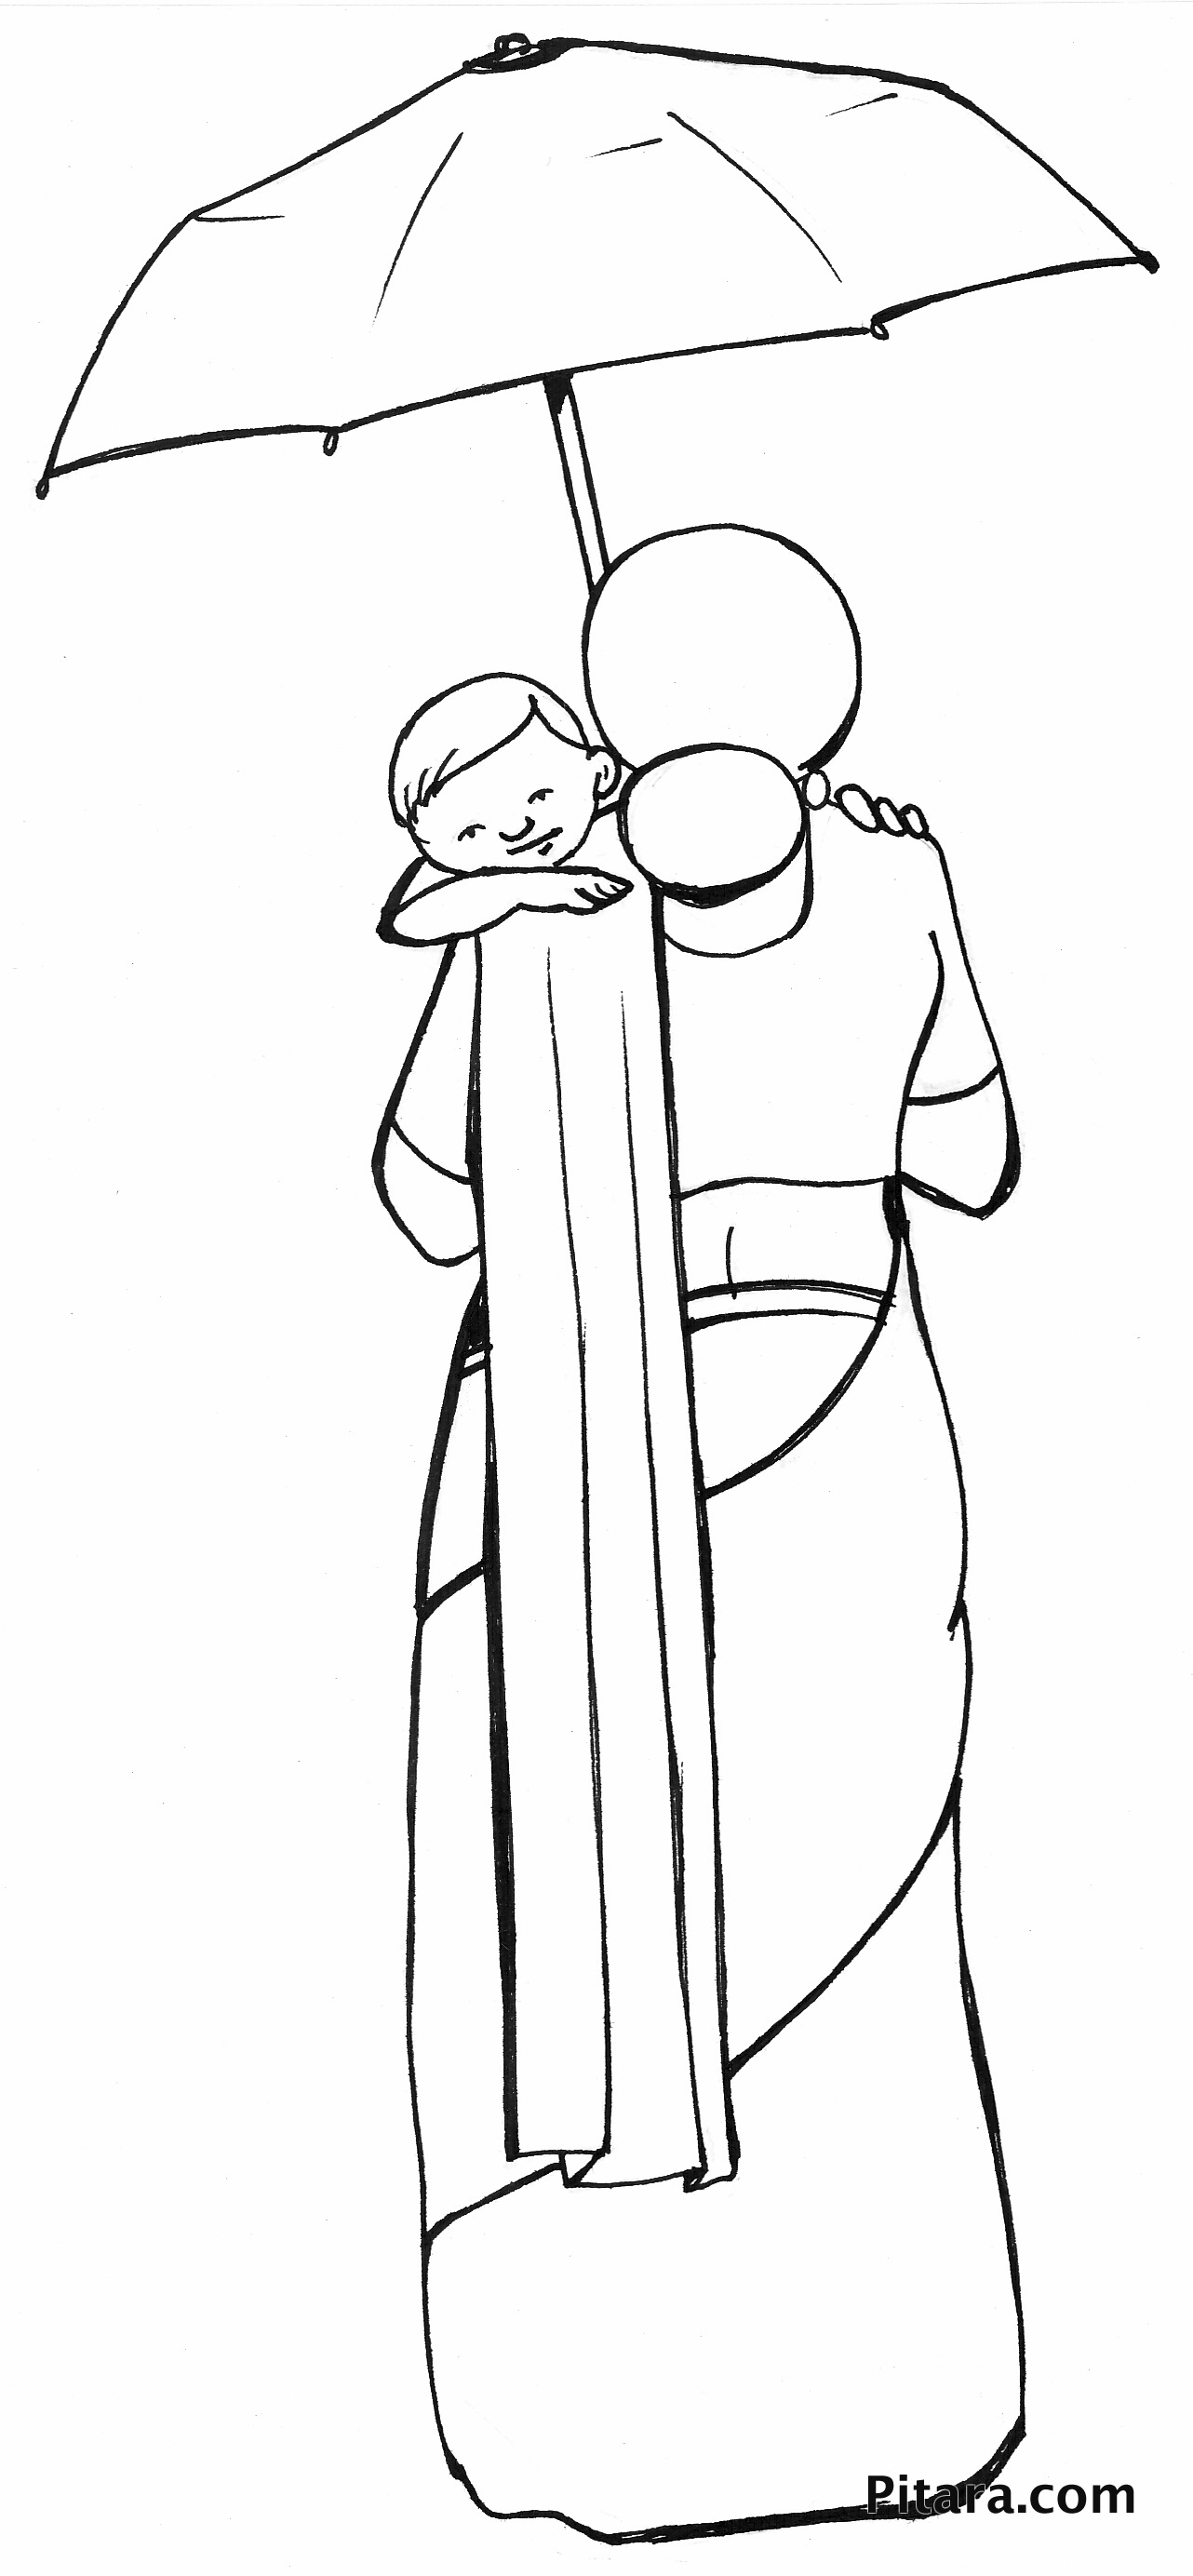 Mother & child – Coloring page